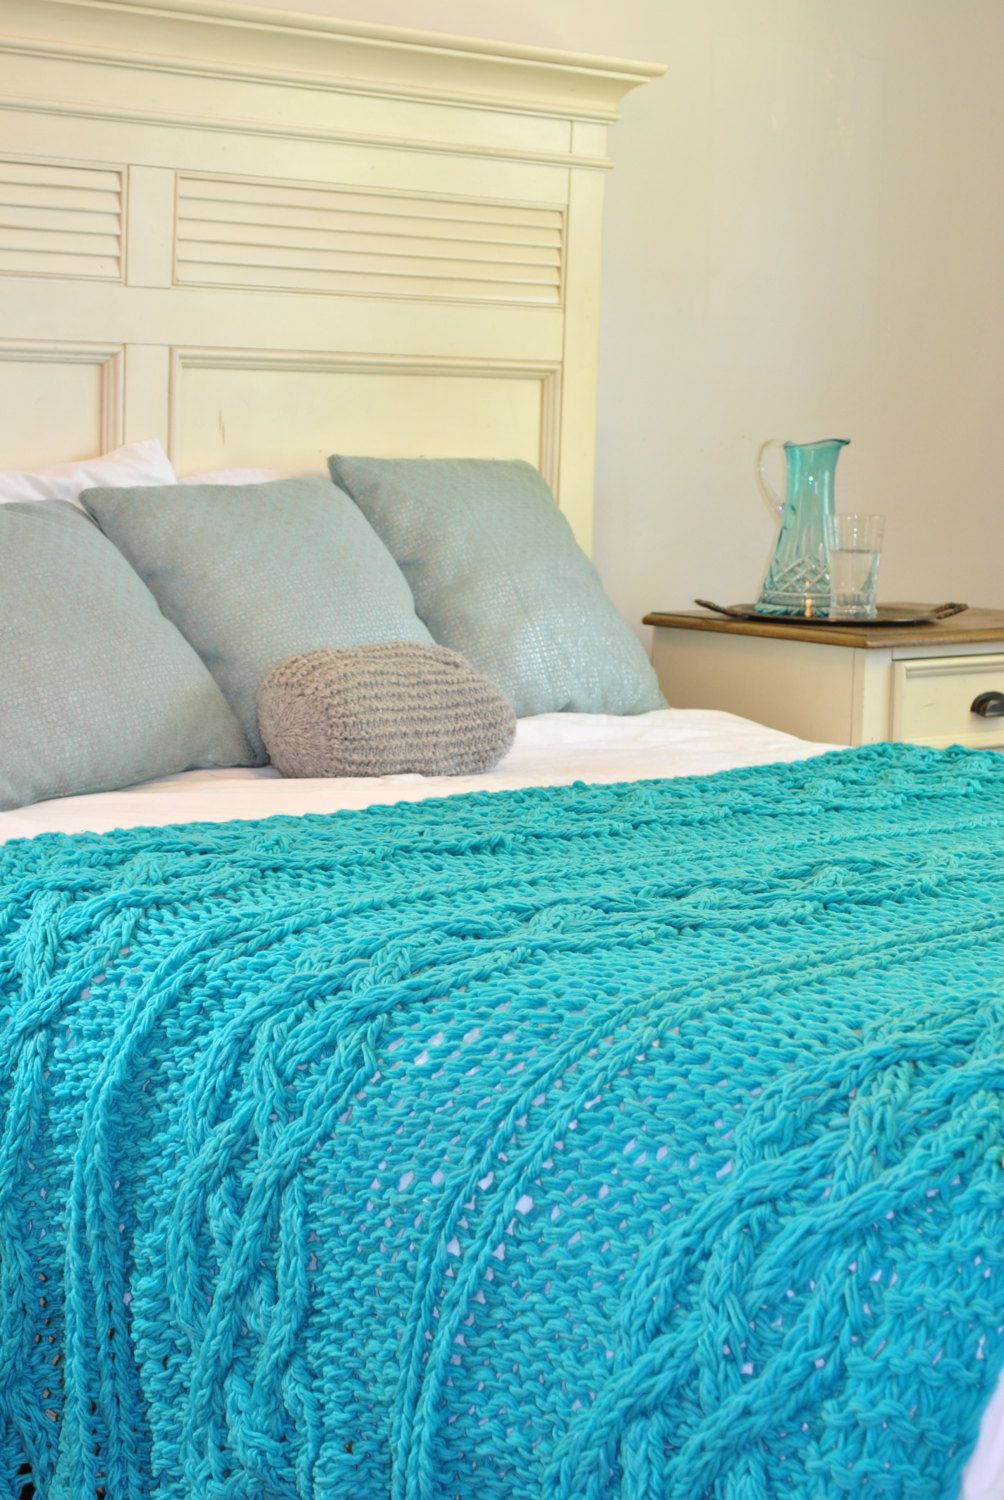 Size Of A Throw Blanket Awesome Light Turquoise Chunky Cable Knit Blanket In Cream Irish Wool Throw Design Inspiration